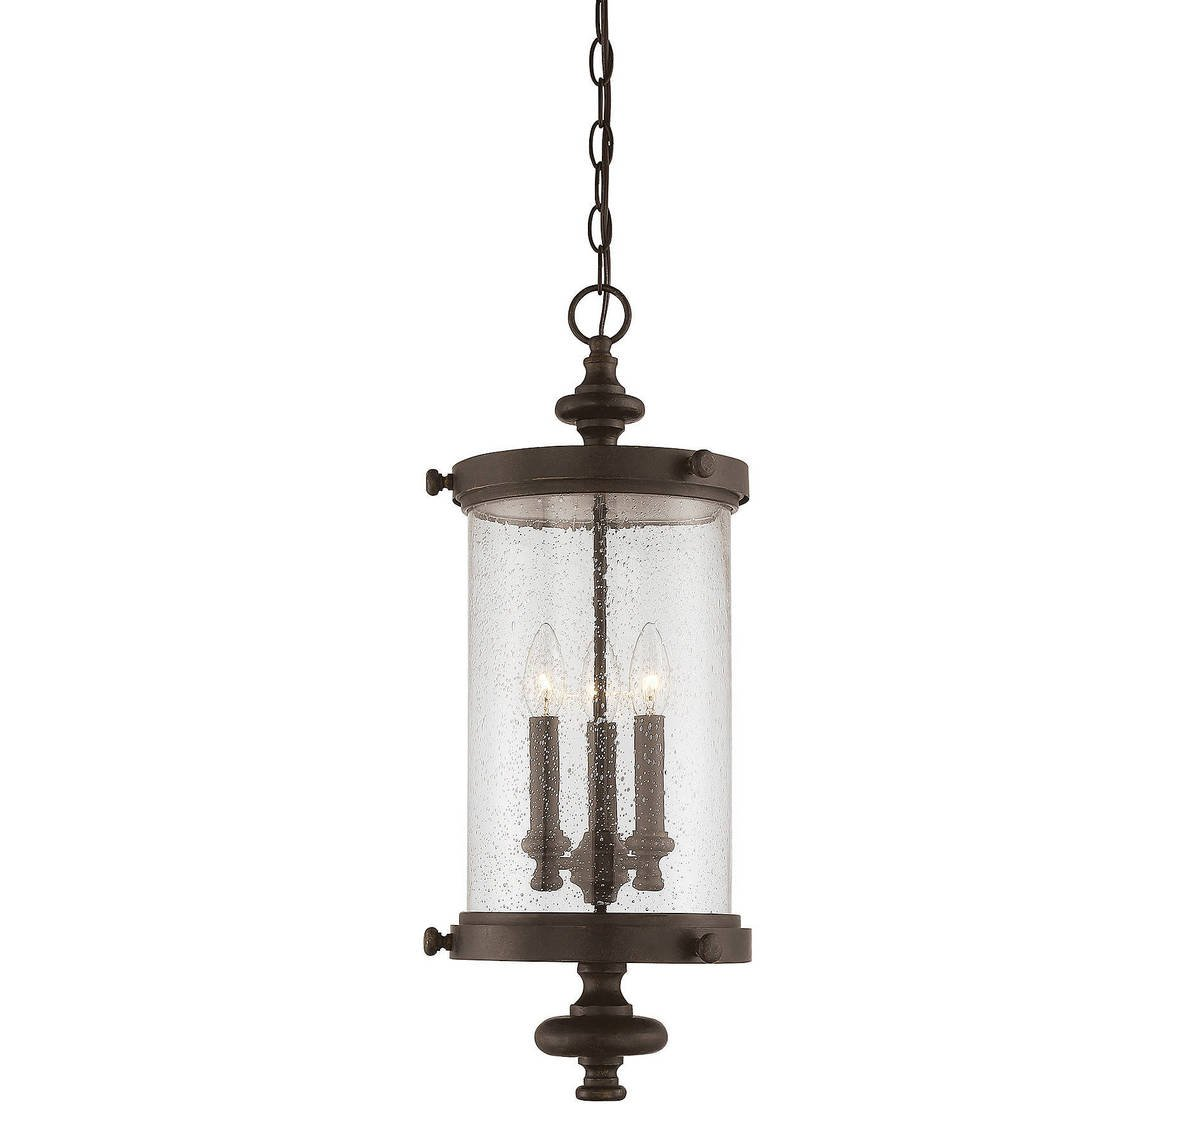 Savoy House 5-1222-40 Three Light Palmer Hanging Lantern in Walnut Patina